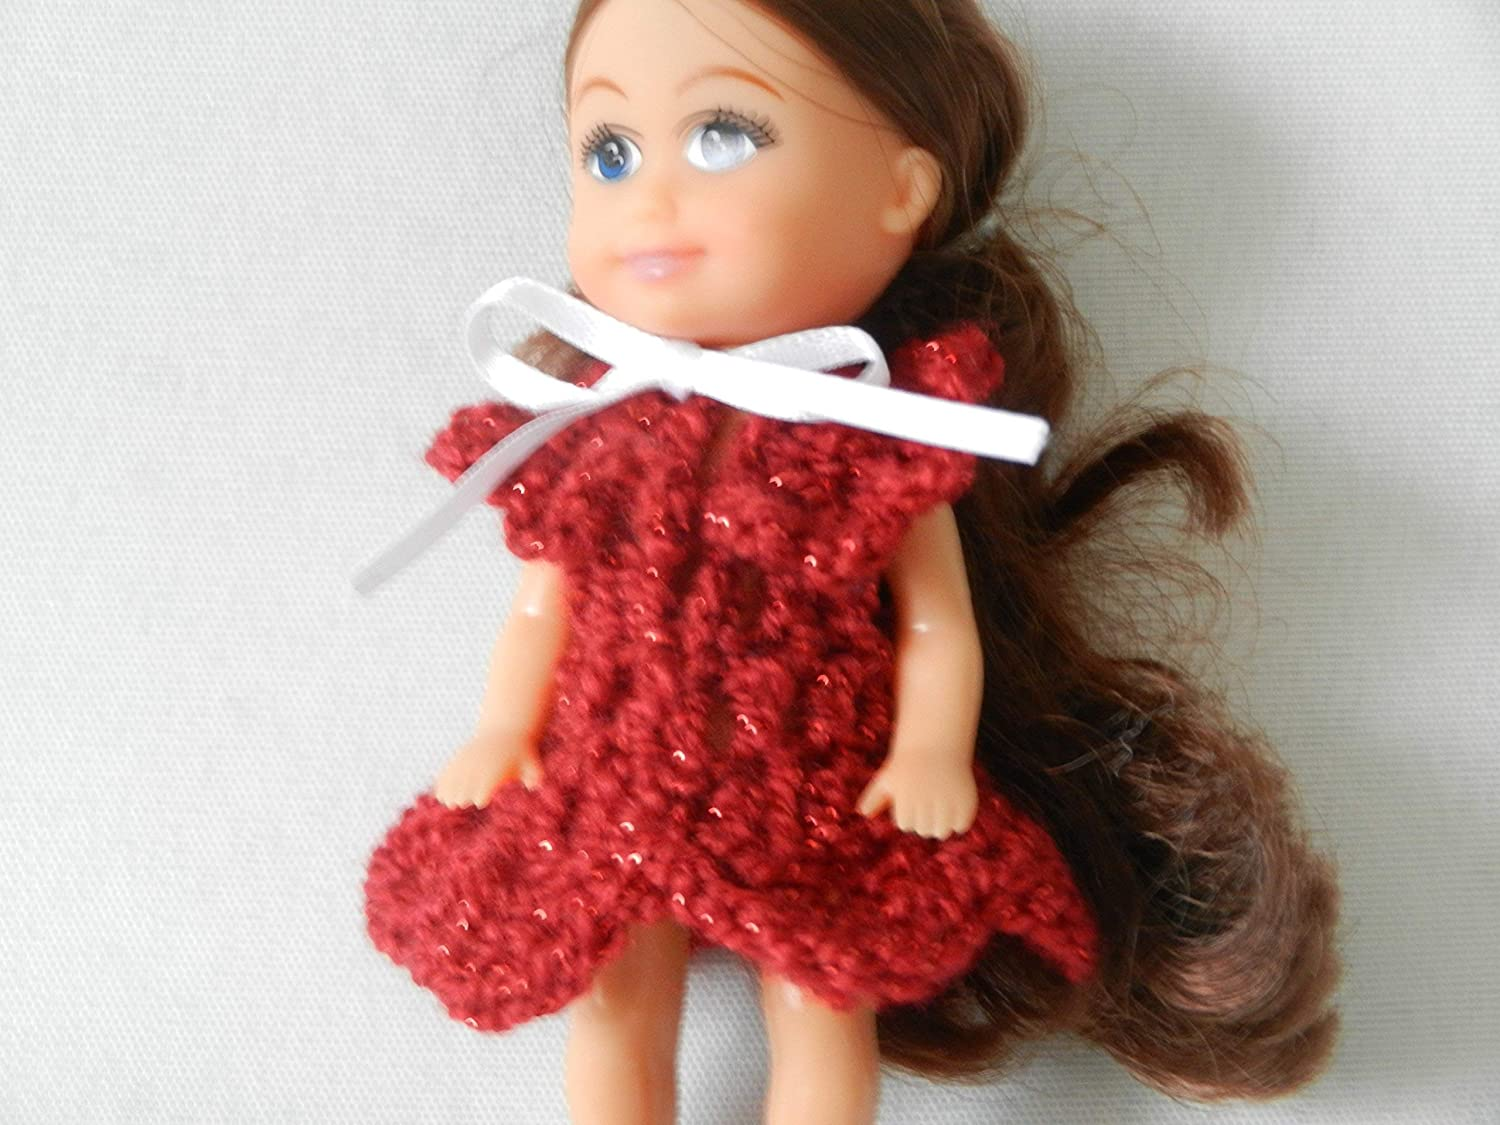 Sparkle Red Doll Dress fits Baby Kelly from Barbie family and other similar size dolls like small Sparkle Girlz